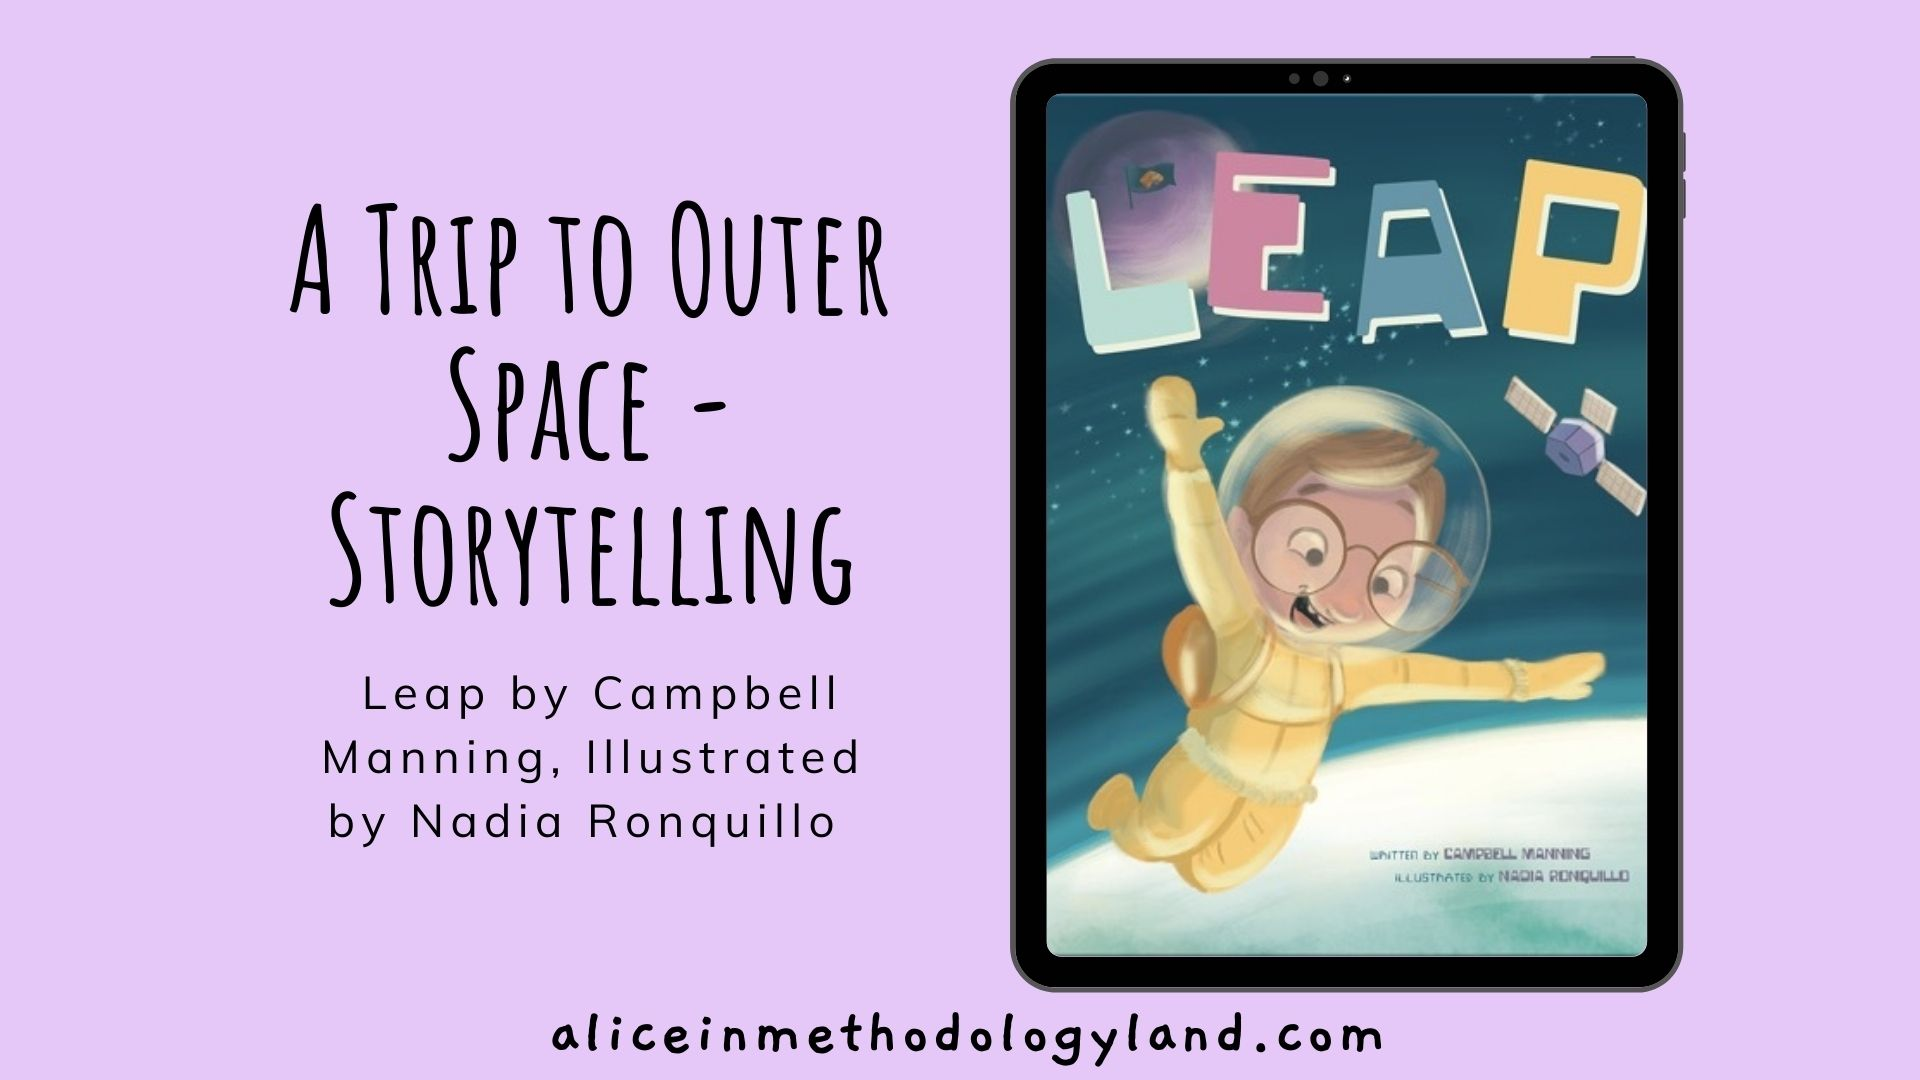 A Trip to Outer Space – Storytelling: Leap by Campbell Manning, Illustrated by Nadia Ronquillo